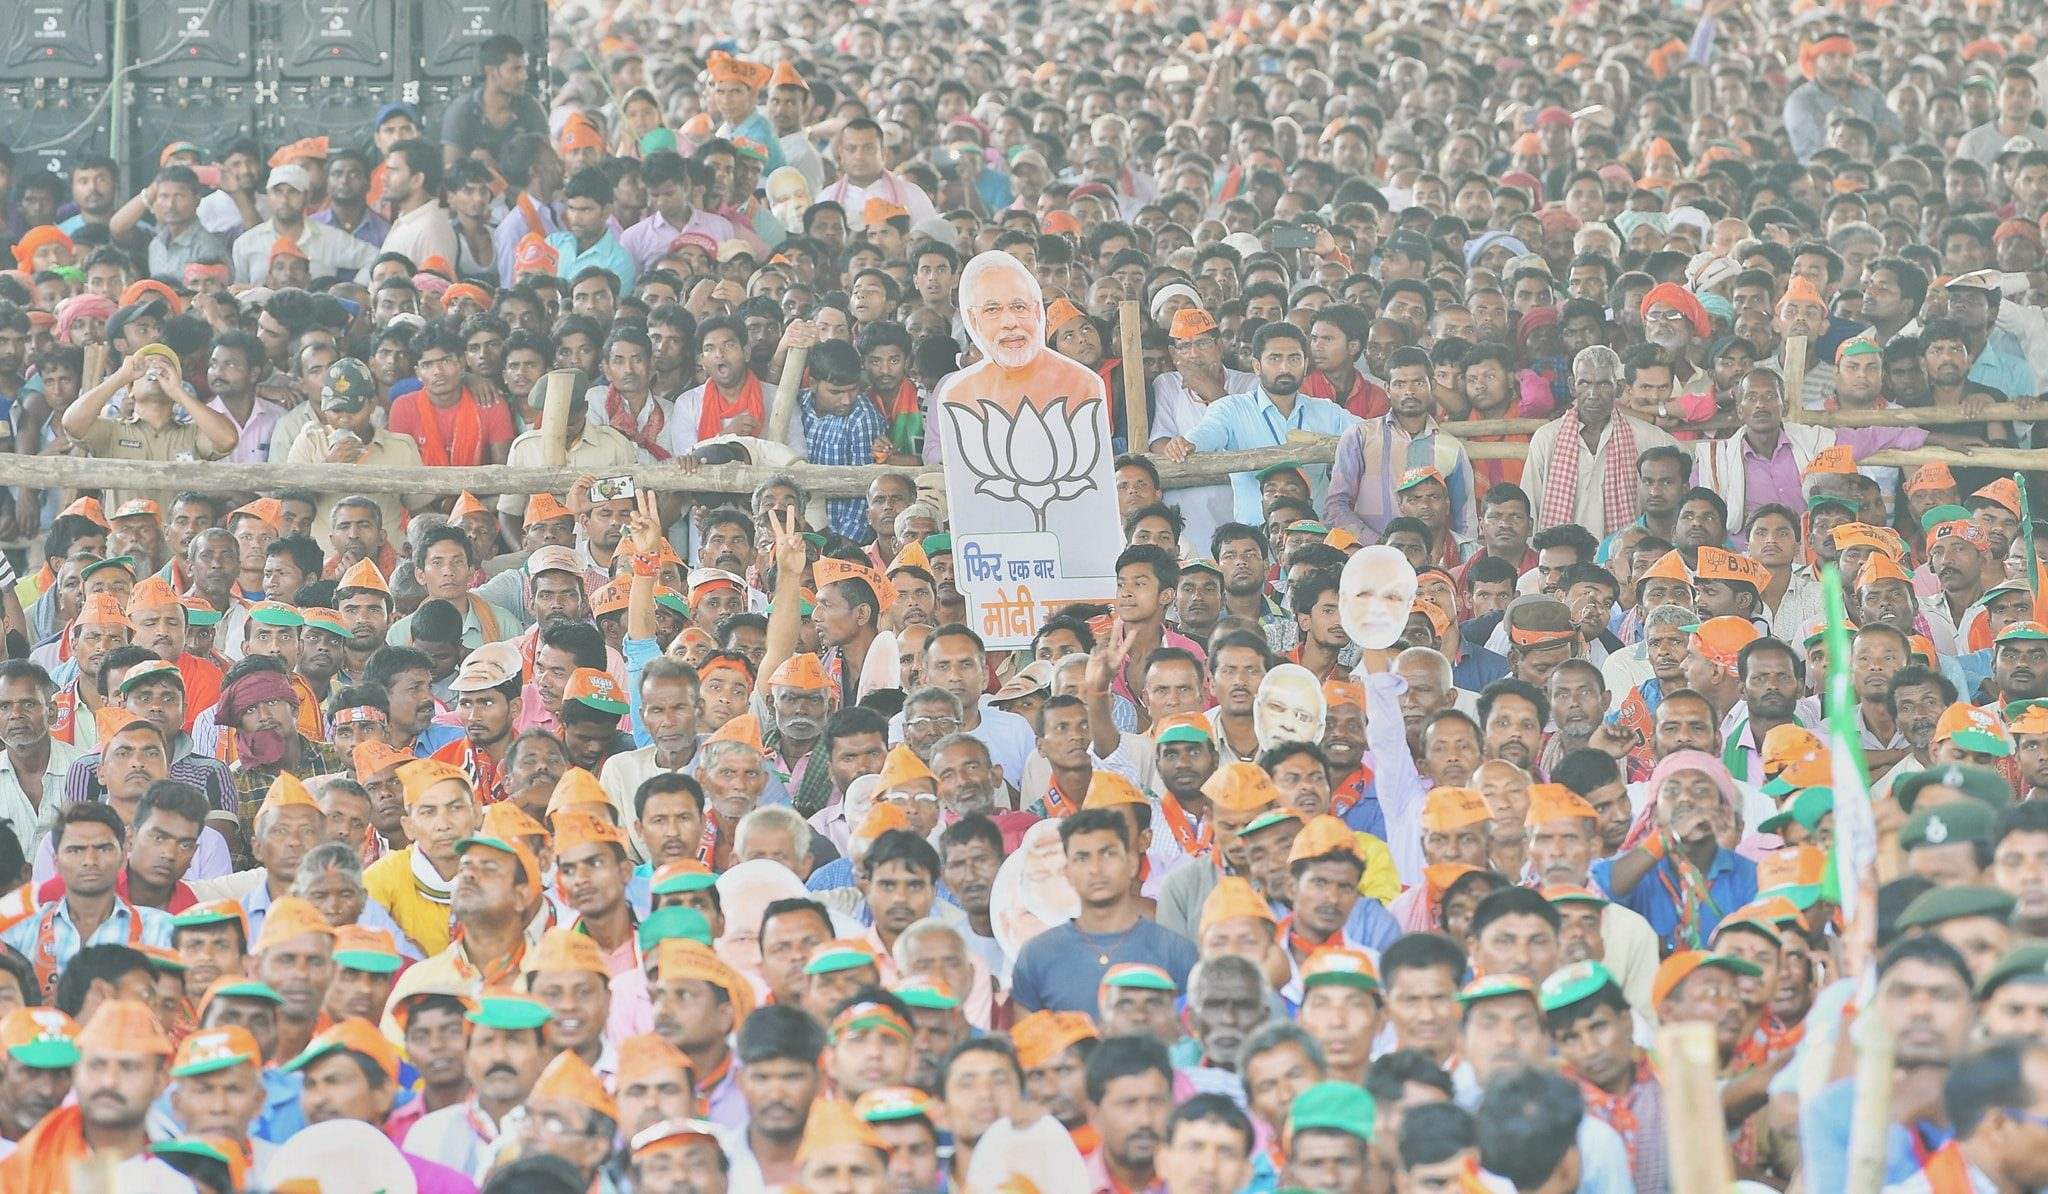 BJP Supporters Pessimistic compared to a month ago